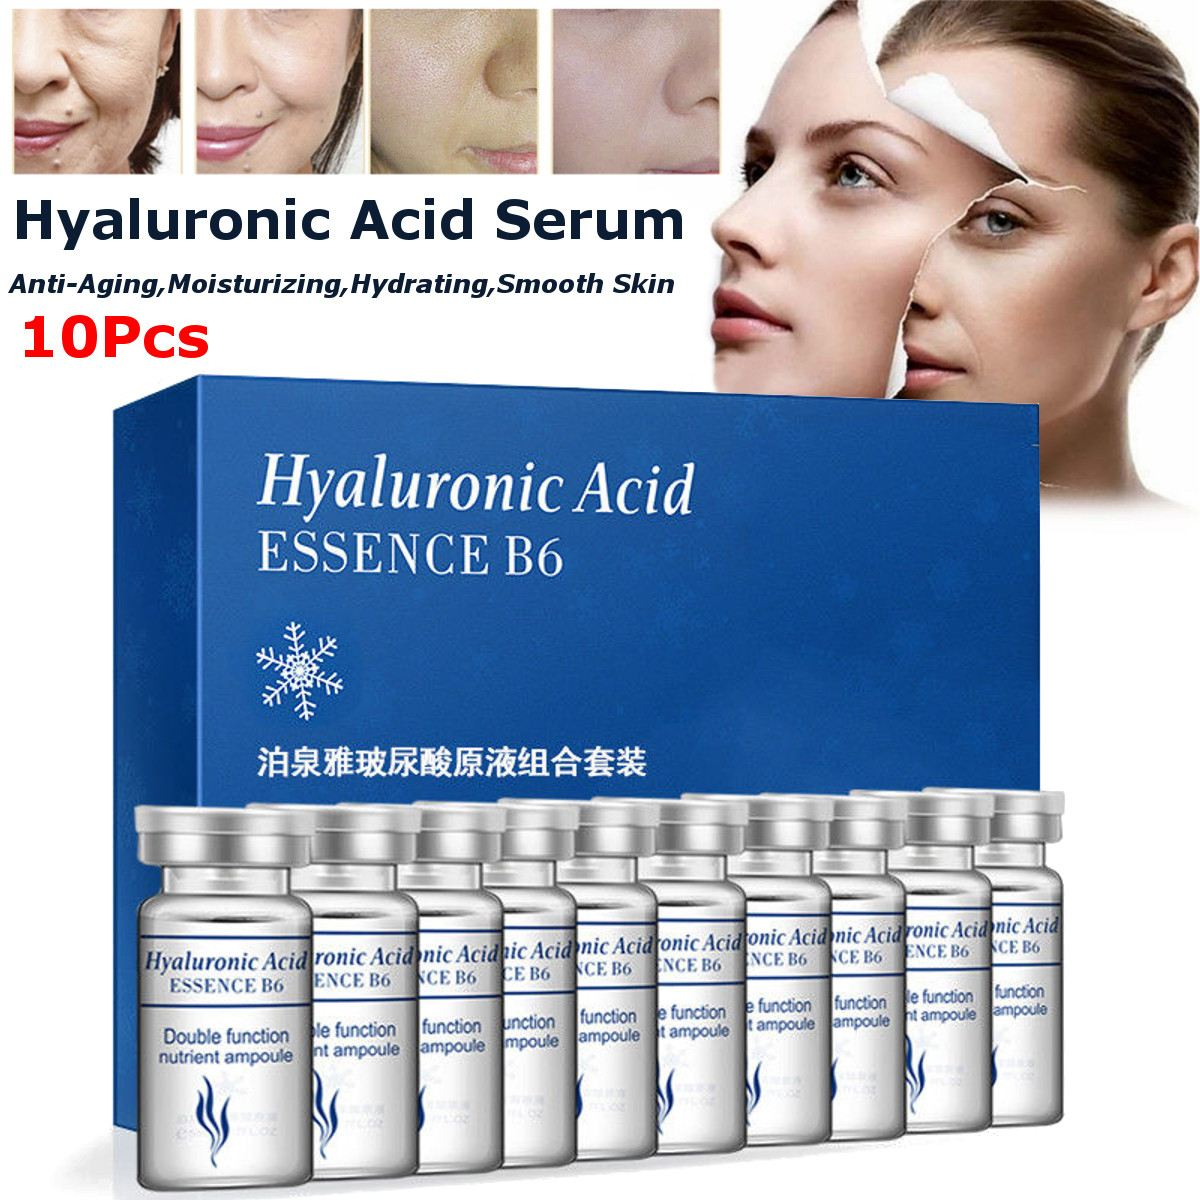 BIOAQUA 10Pcs Vitamin Hyaluronic Acid Serum Moisturizer Facial Skin Care Set Anti Wrinkle Anti Aging Collagen Essences Liquid